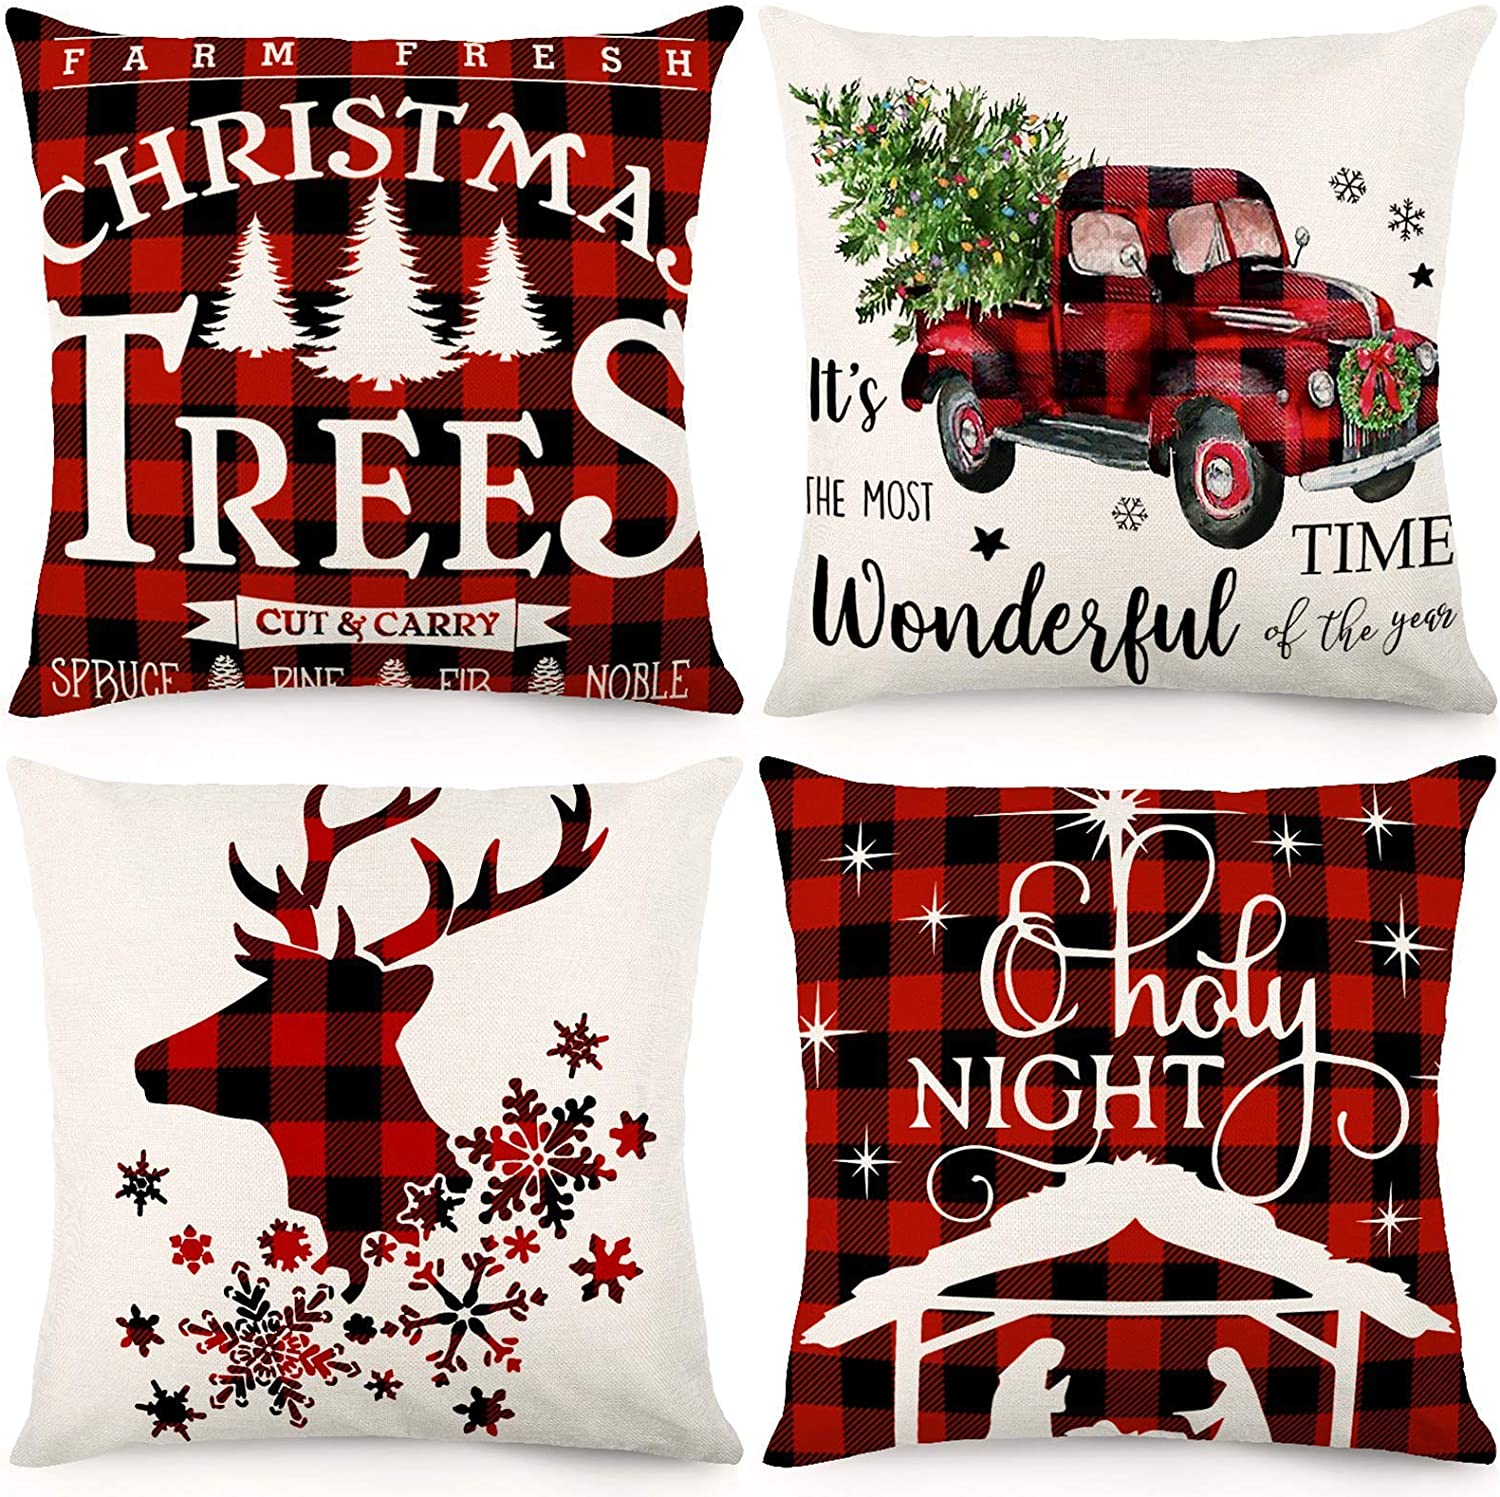 LLXX Christmas Pillow Covers 18x18 Inches Christmas Decorations Black and Red Buffalo Plaid Throw Pillowcase Farmhouse Cushion Case for Home Decor Set of 4